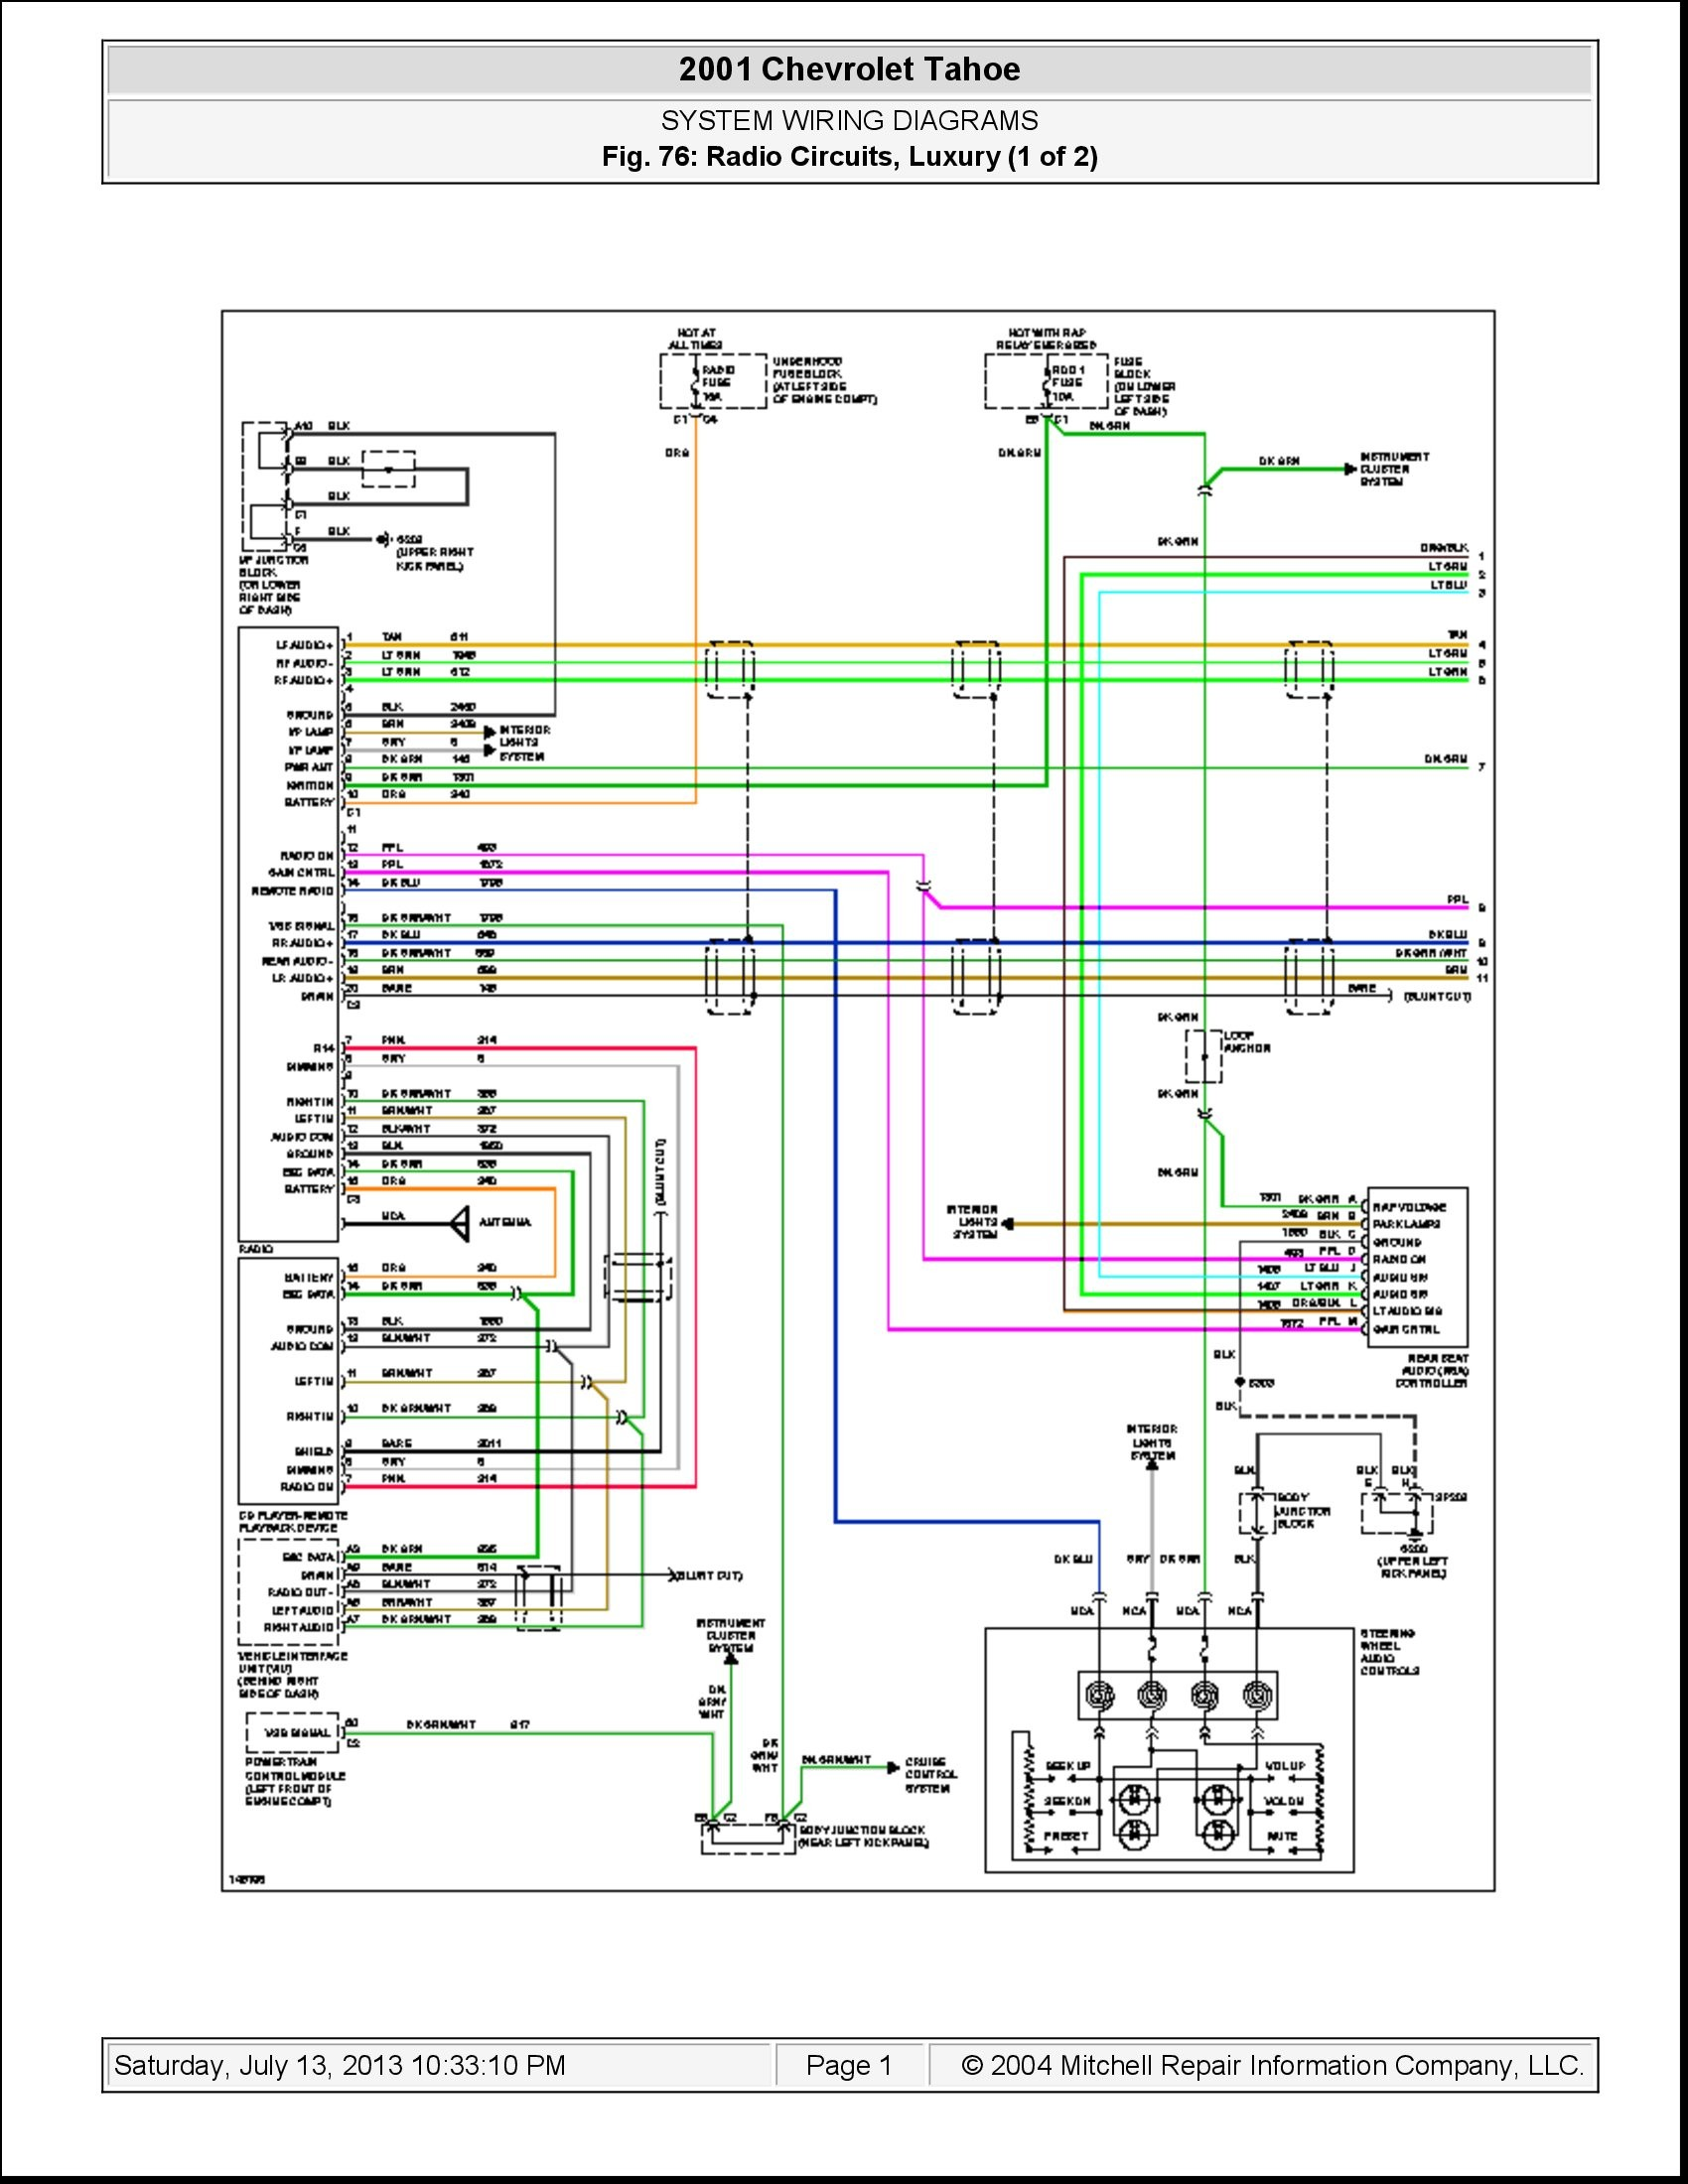 2011 Silverado Wiring Harness Diagram - Lighting Fixture Tandem Wiring  Diagram for Wiring Diagram SchematicsWiring Diagram Schematics